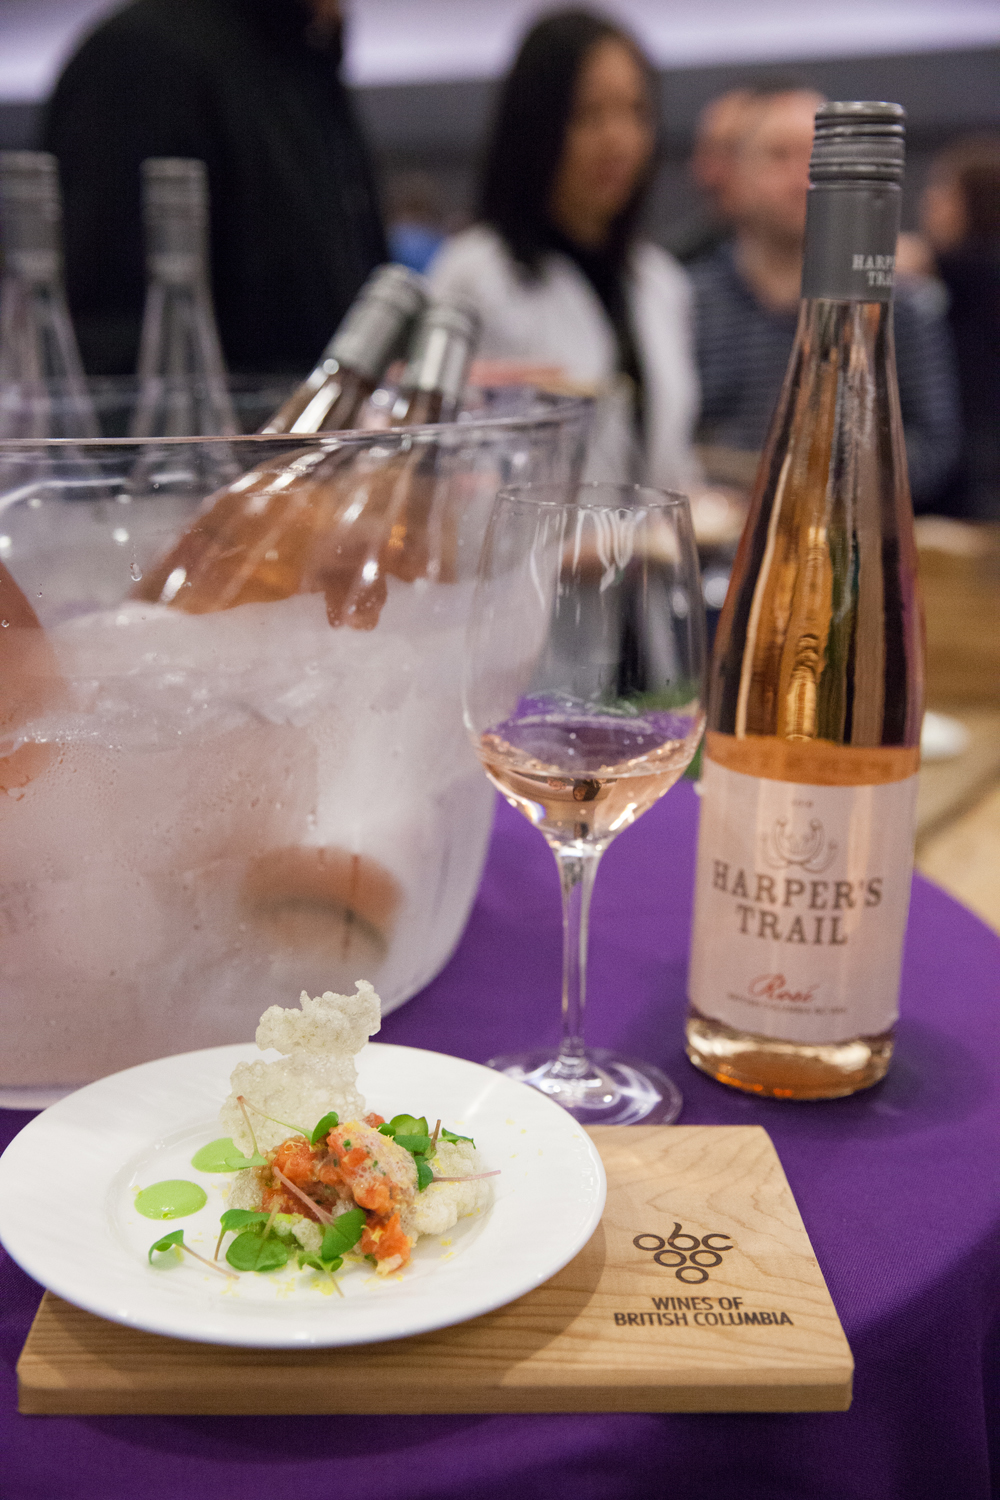 BC Salmon Tartare (with Cured Yolk, Radish, Leek & Pea) from Chef Stacy Johnston of  Ocean Wise  - which was paired with a  Harper's Trail  2018 Rosé